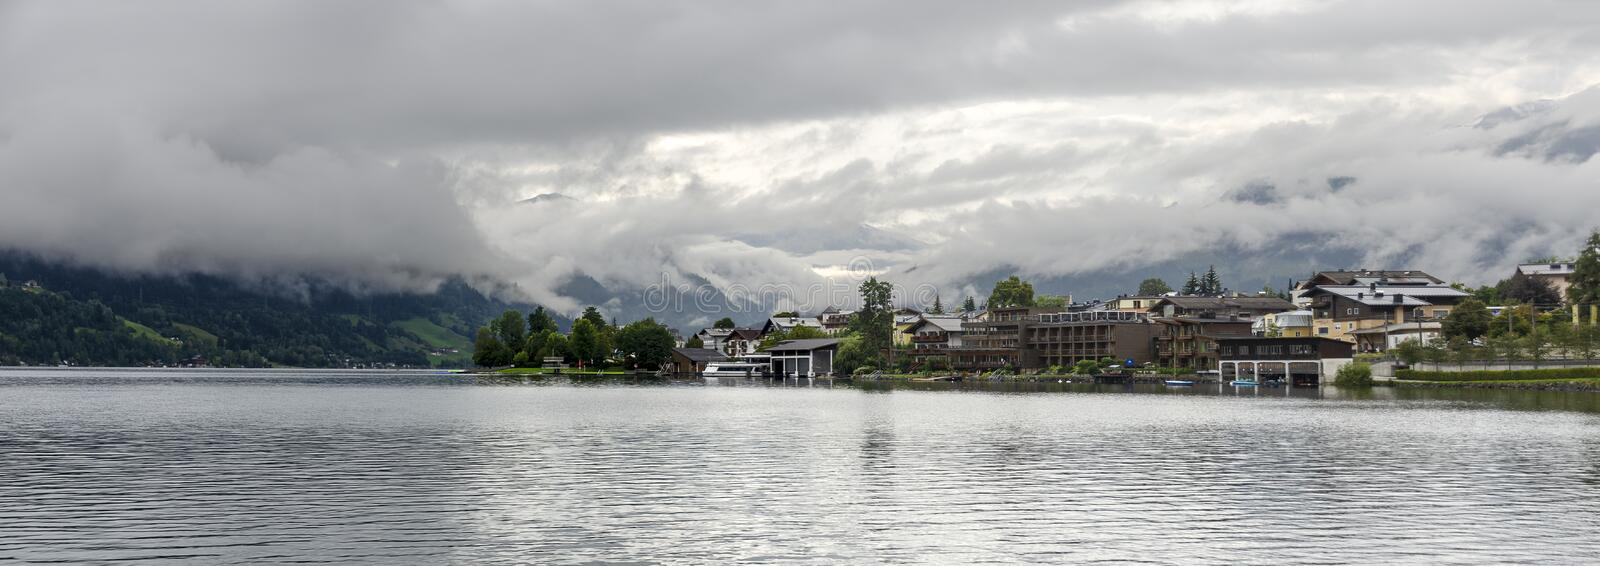 Panoramic view of Zell at the lake stock photo